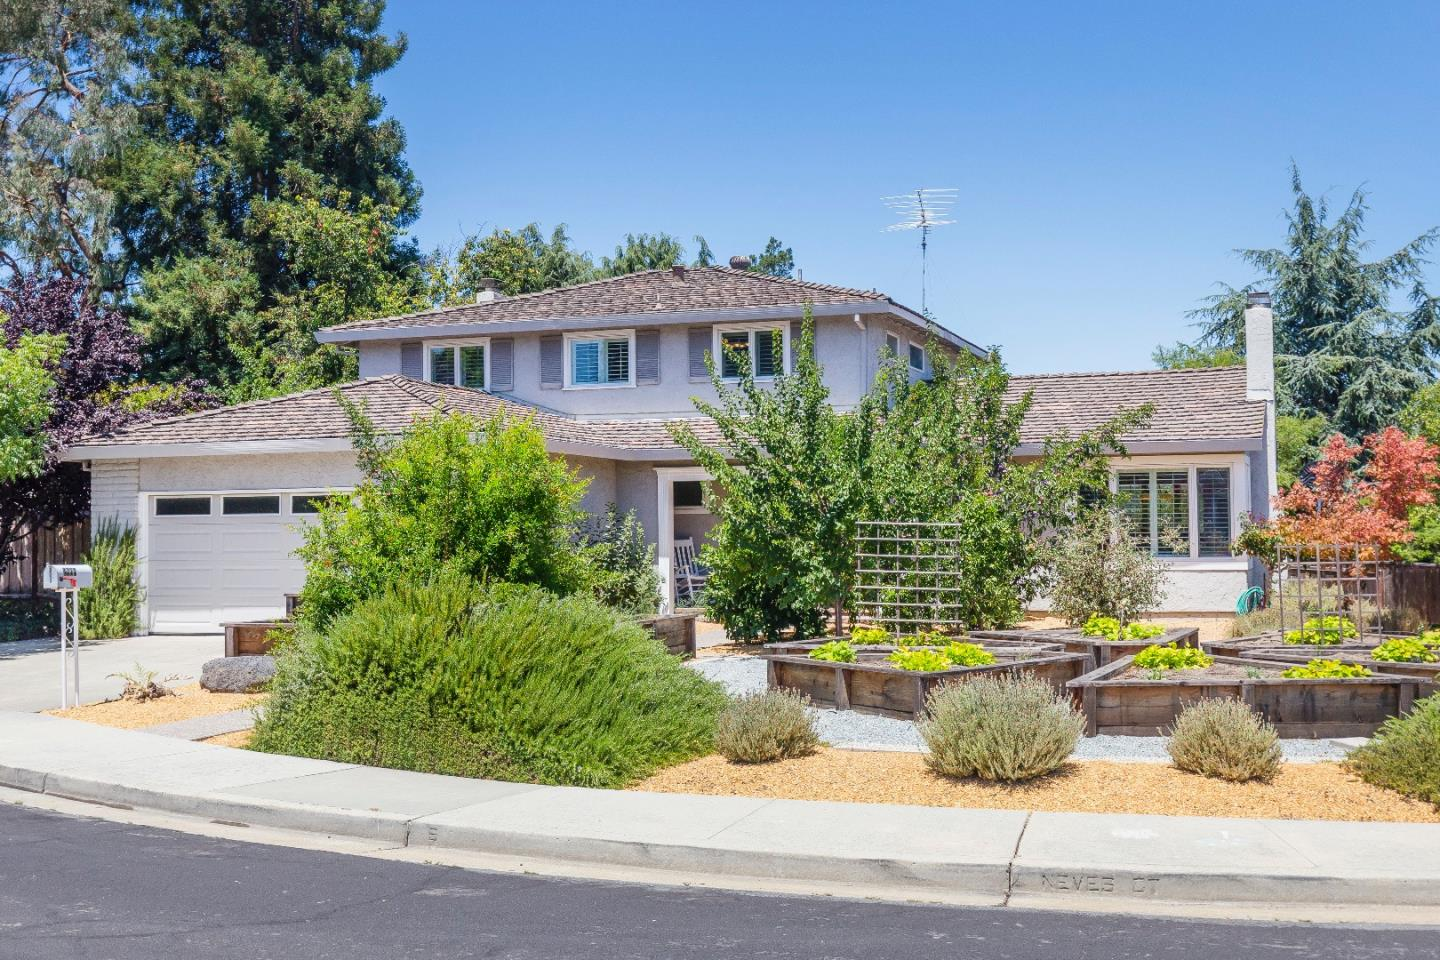 Single Family Home for Sale at 2609 Neves Court Santa Clara, California 95051 United States